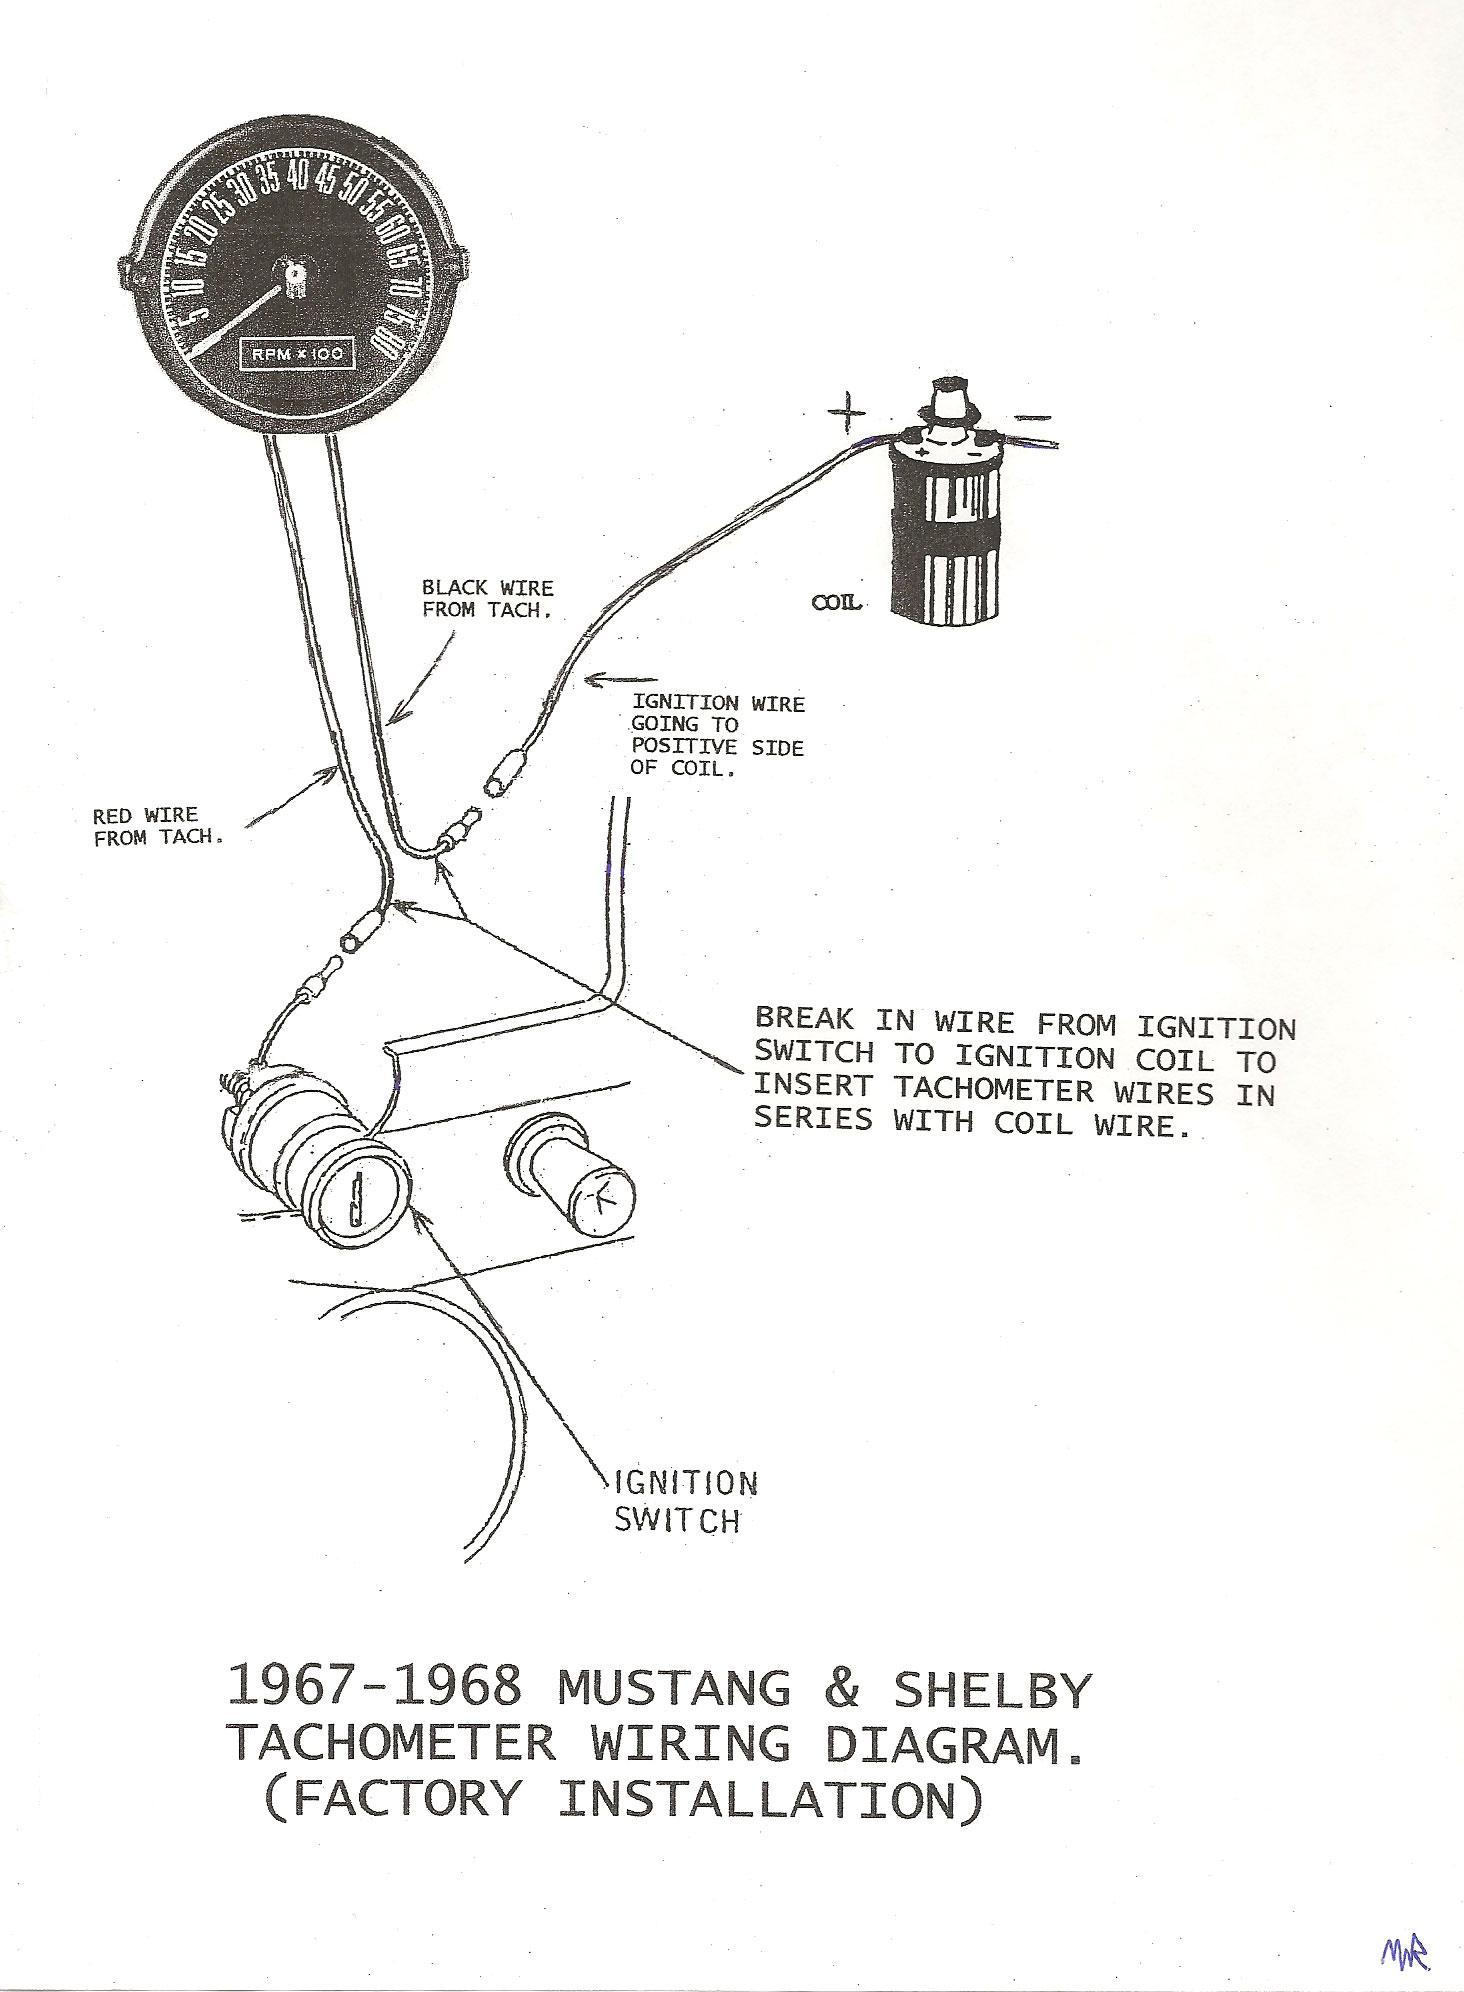 [SCHEMATICS_48IS]  1966 Mustang Wiring Diagram Tachometer Diagram Base Website Diagram  Tachometer - EXAMPLEVENNDIAGRAM.DIONISIORISTORANTE.IT | 1966 Mustang Instrument Wiring Diagram |  | dionisioristorante